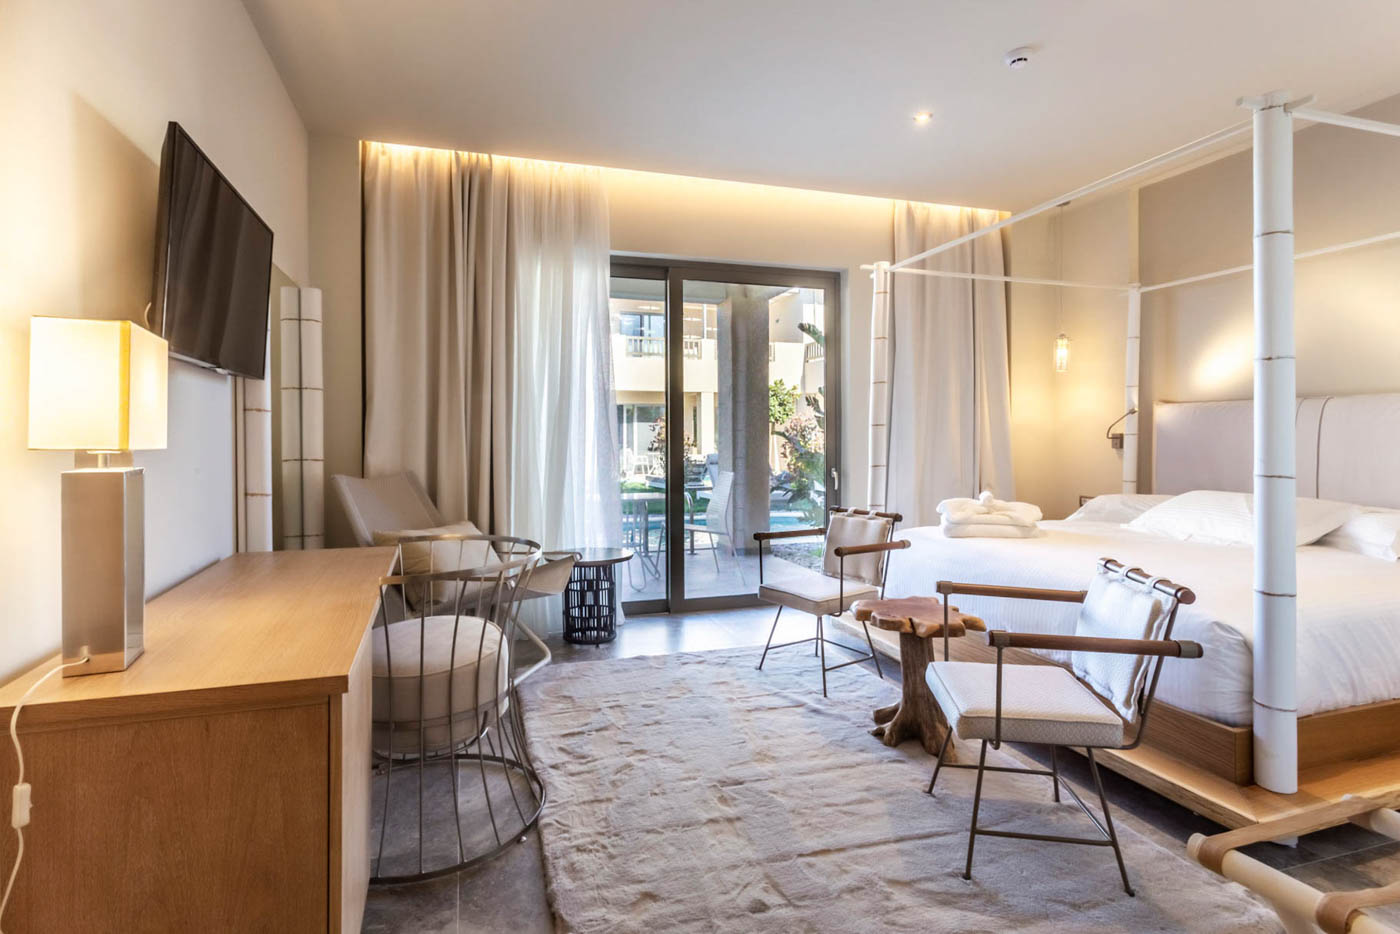 Elysian luxury hotel and spa Kalamata bamboo bedroom and a balcony view